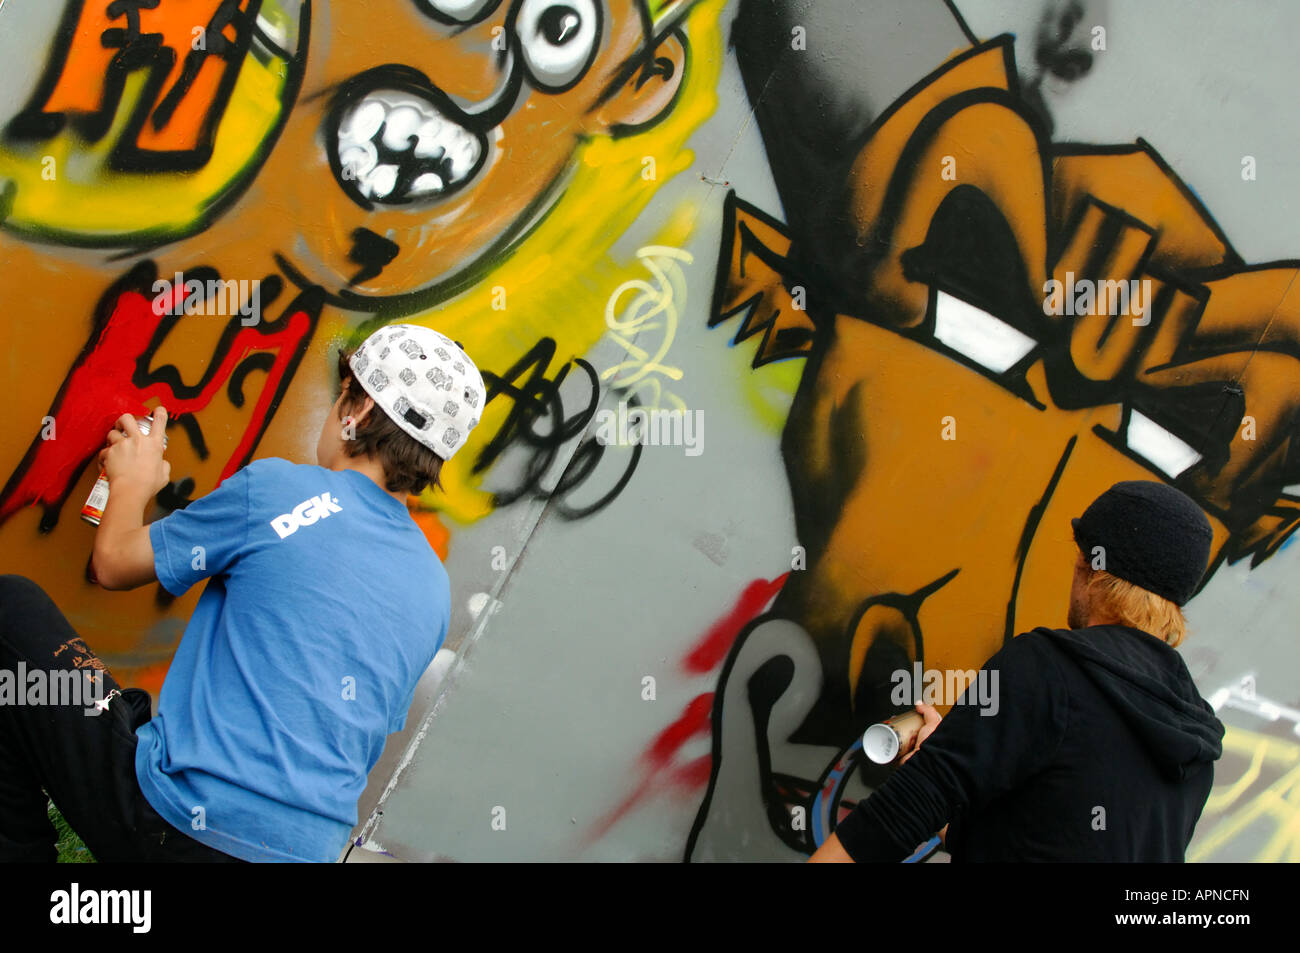 two kids youngsters youths graffitti writing on a wall with spray paints in various colours vandalism criminal damage - Stock Image